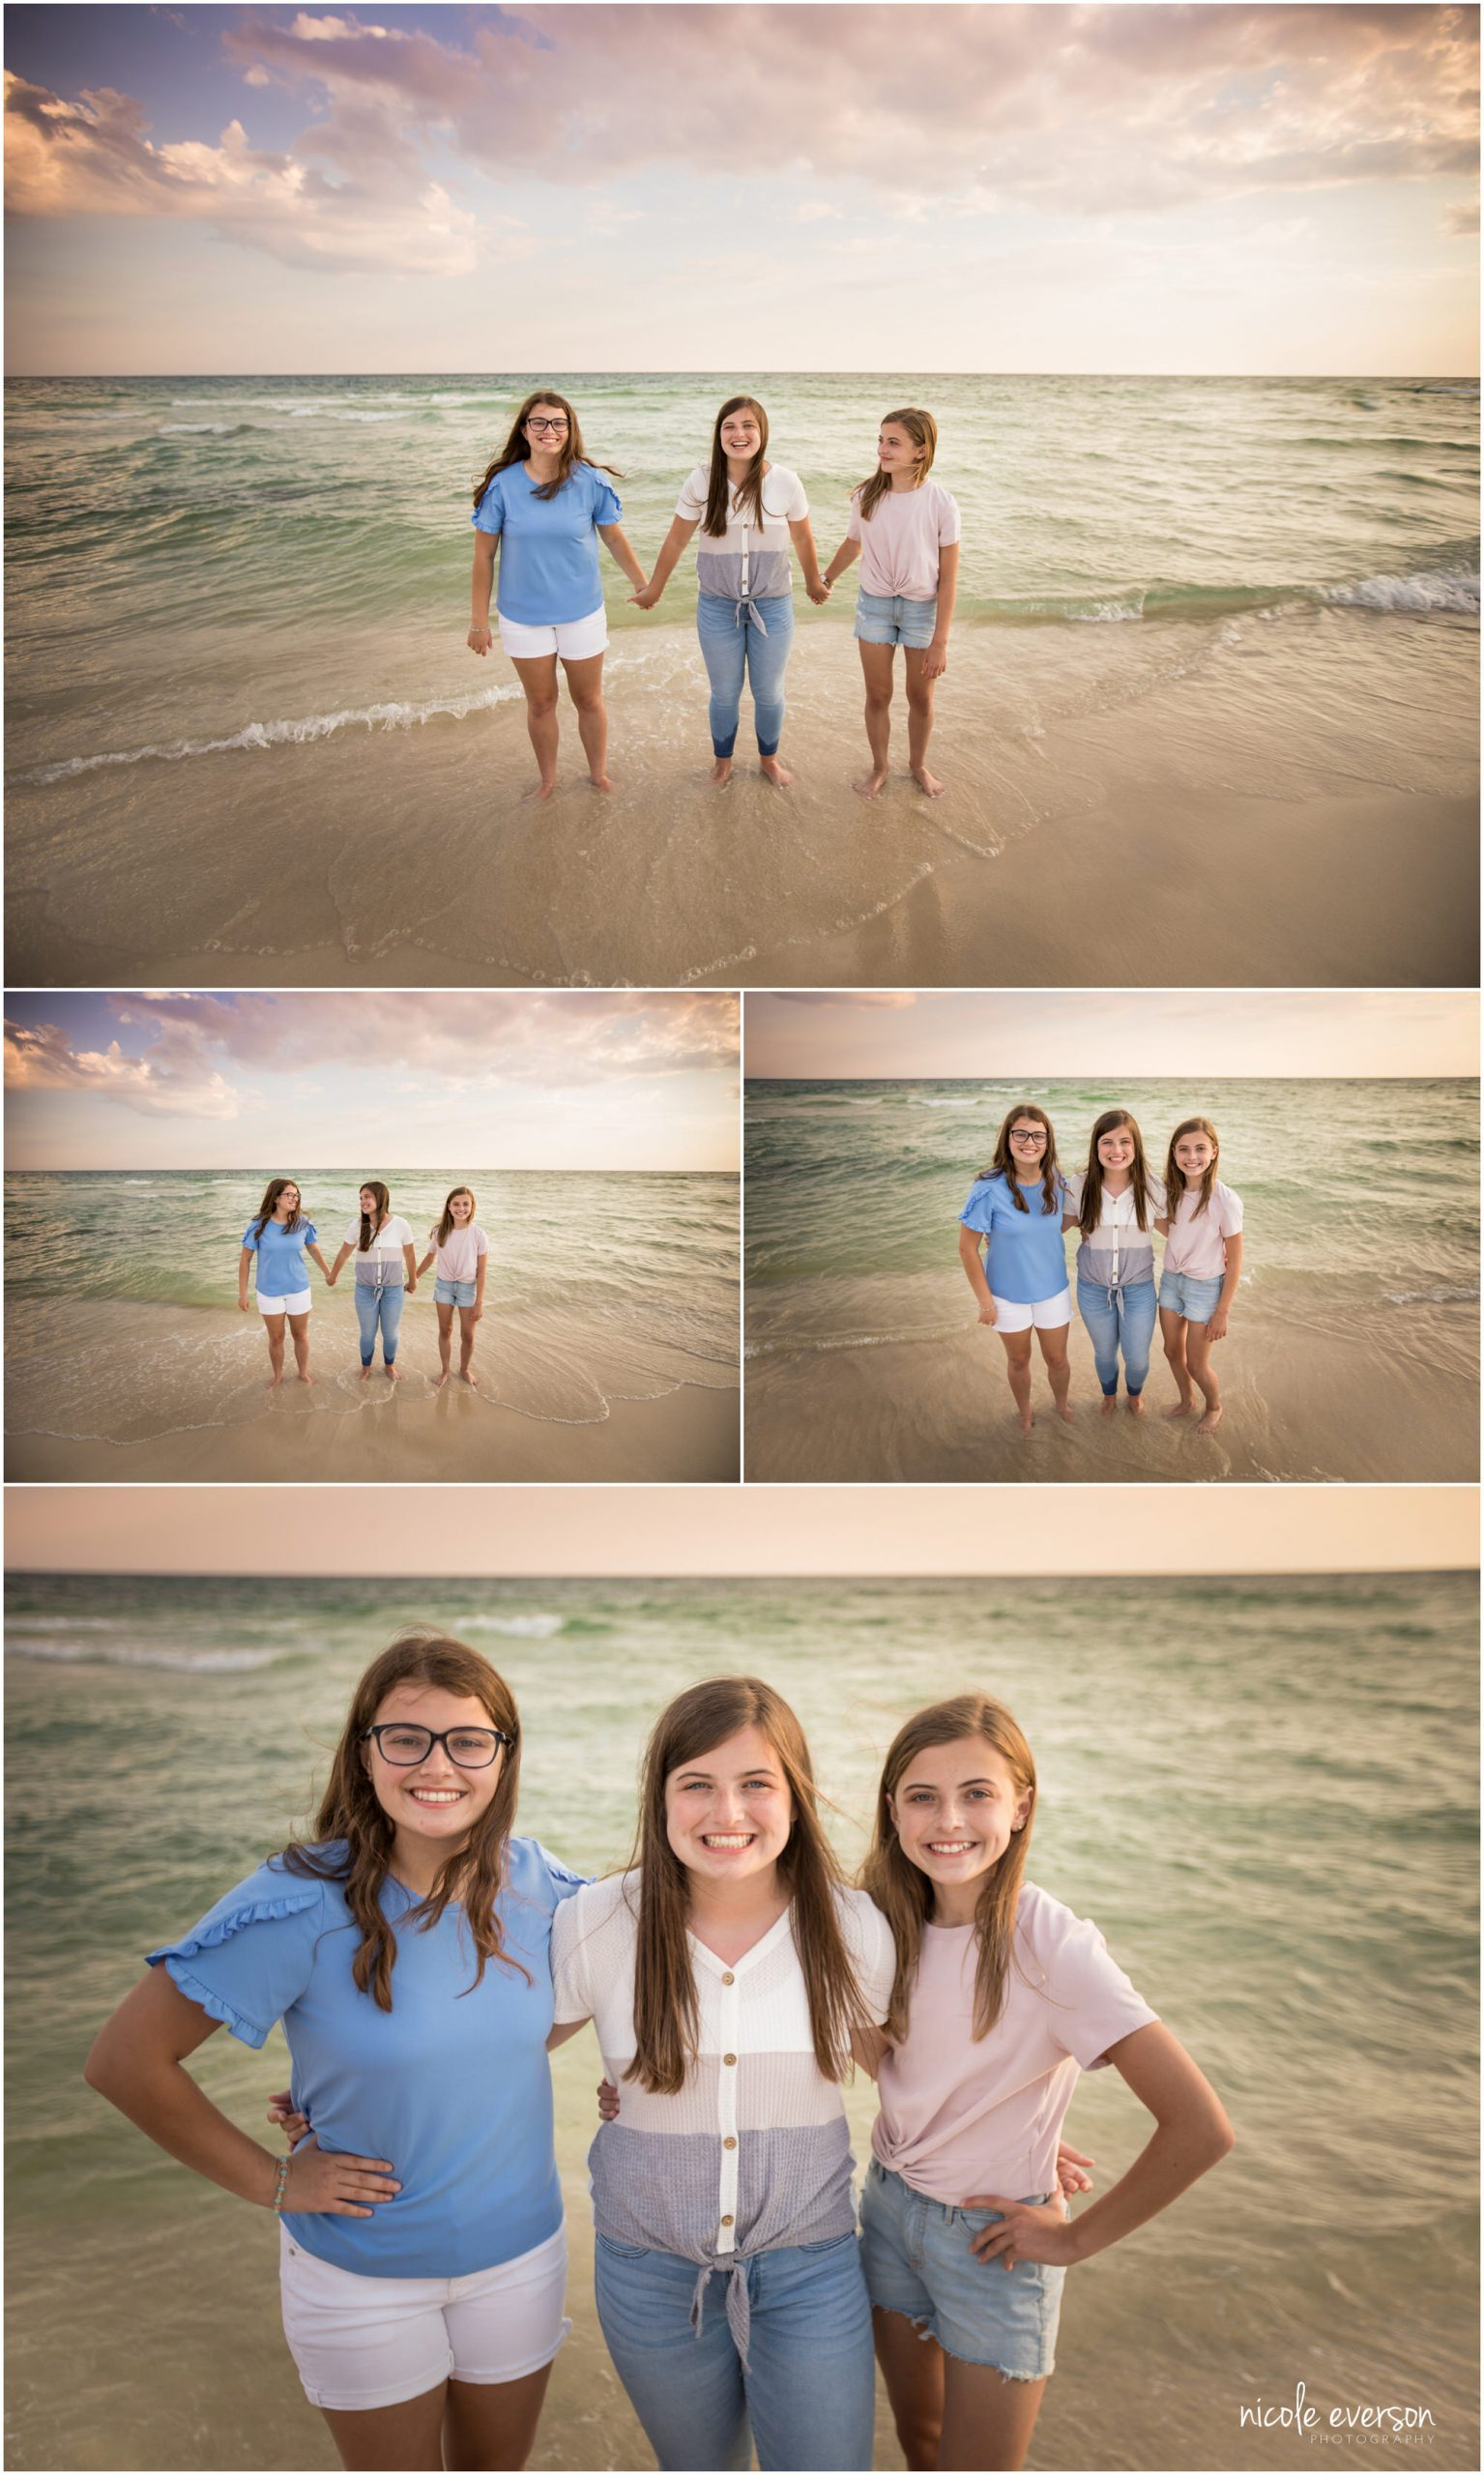 Photos of sisters on Rosemary Beach. Nicole Everson Photography.